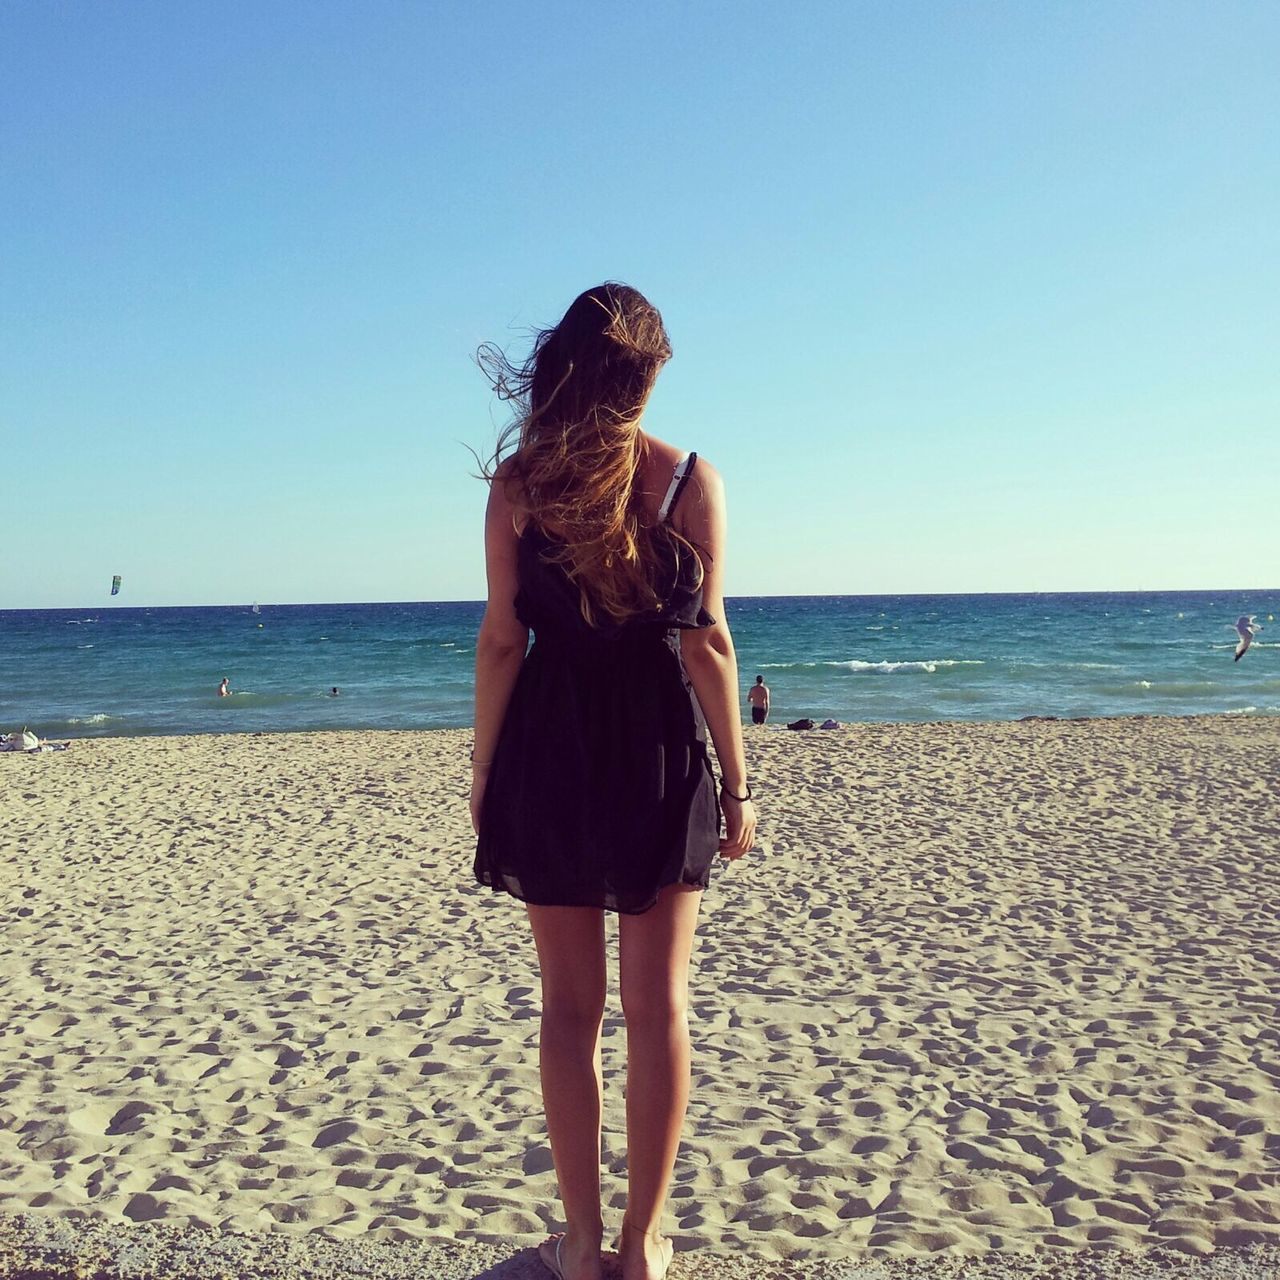 Peace of mind. Showcase March Summer Sea And Sky Horizon Over Water Horizon Girl Wind Sand Sandy Beach Beach Beautiful Waves Mallorca SPAIN Feel The Journey Beauty In Nature Clear Sky Colour Image Day Dress Long Hair Real People Rear View Relaxation Square Long Goodbye